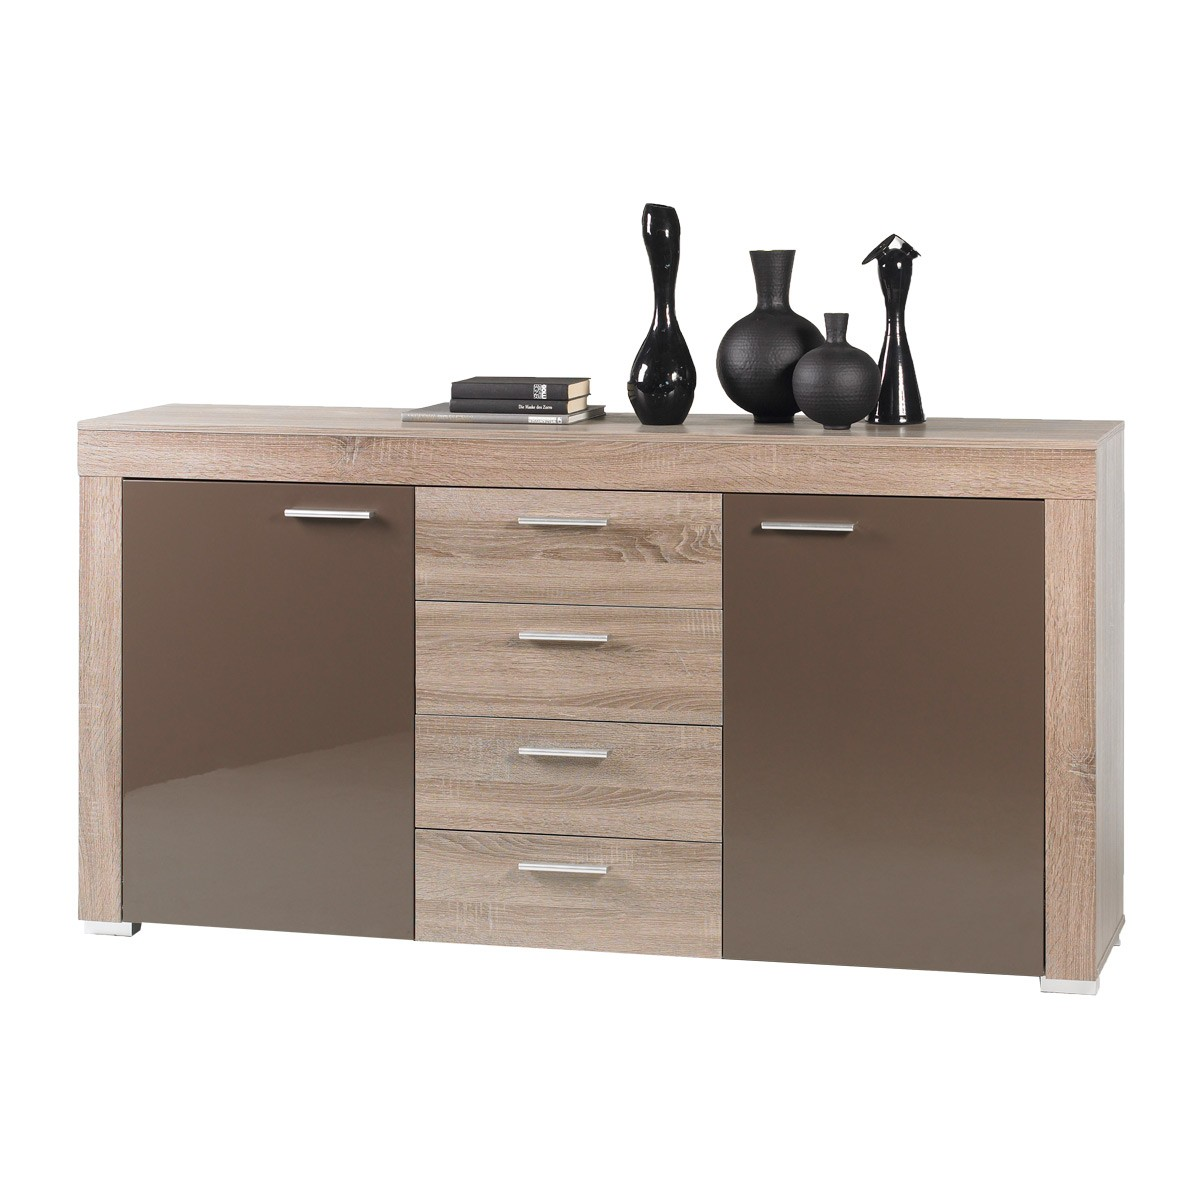 Poco sideboard kommode interessante ideen for Sideboard kommode